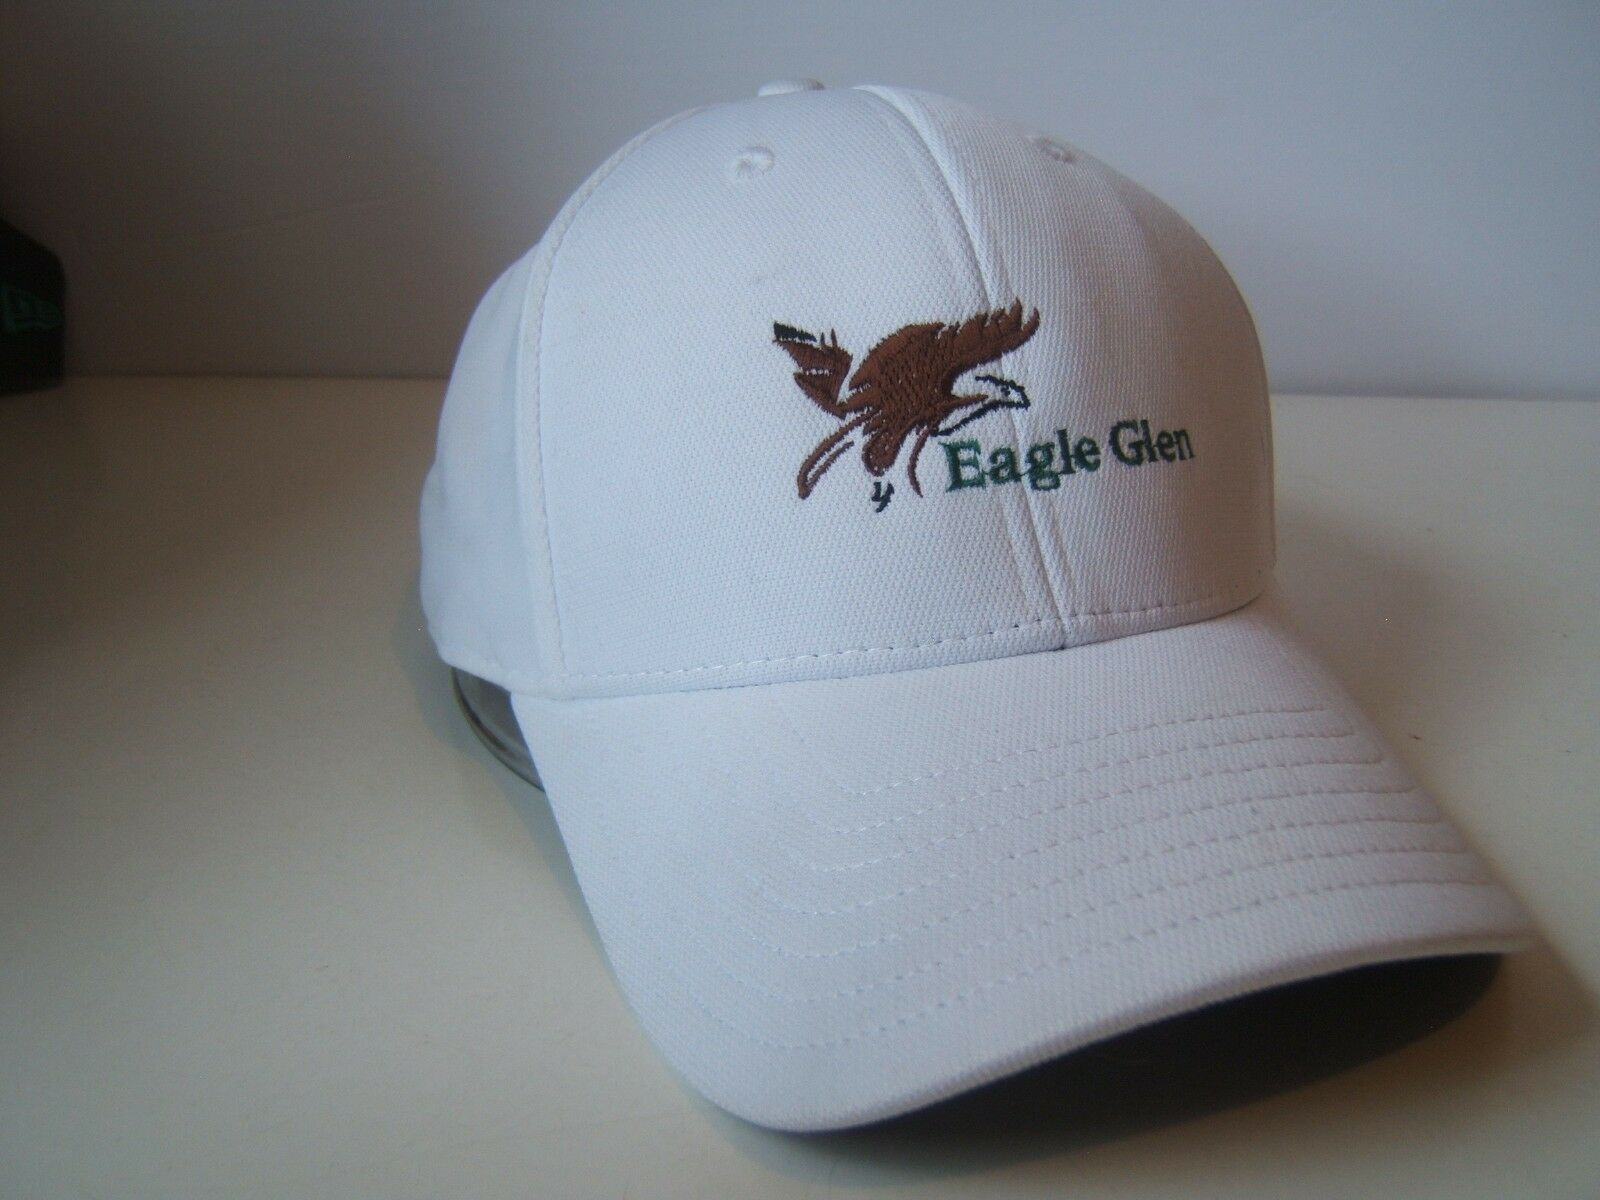 Eagle Glen Golf Course Hat Hat Hat White Discolored TaylorMade Hook Loop Baseball Cap c7f13b